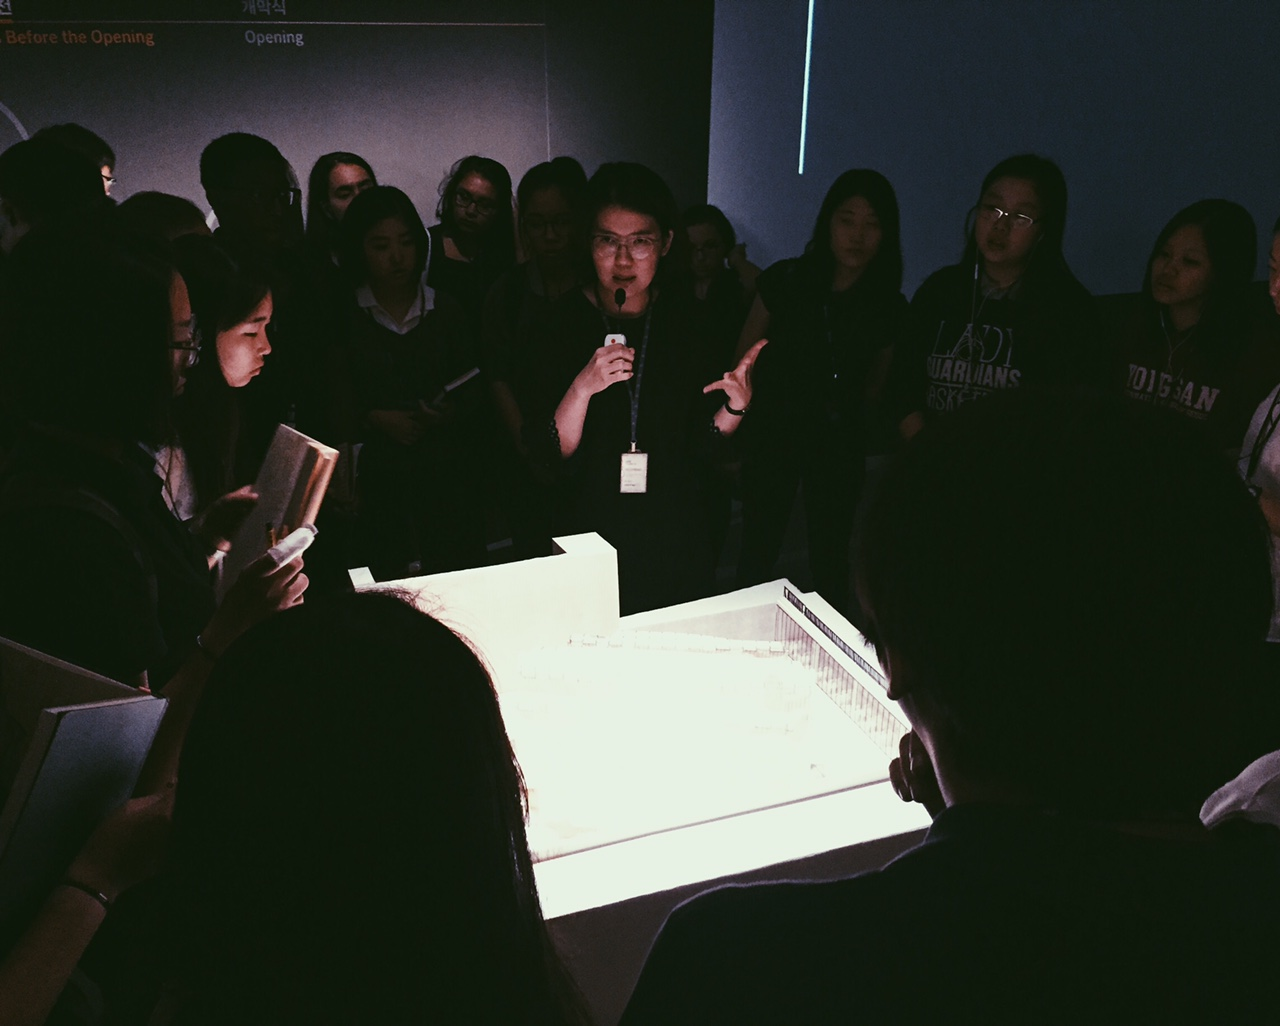 AP Design students on a guided tour at the Museum of Modern + Contemporary Art.